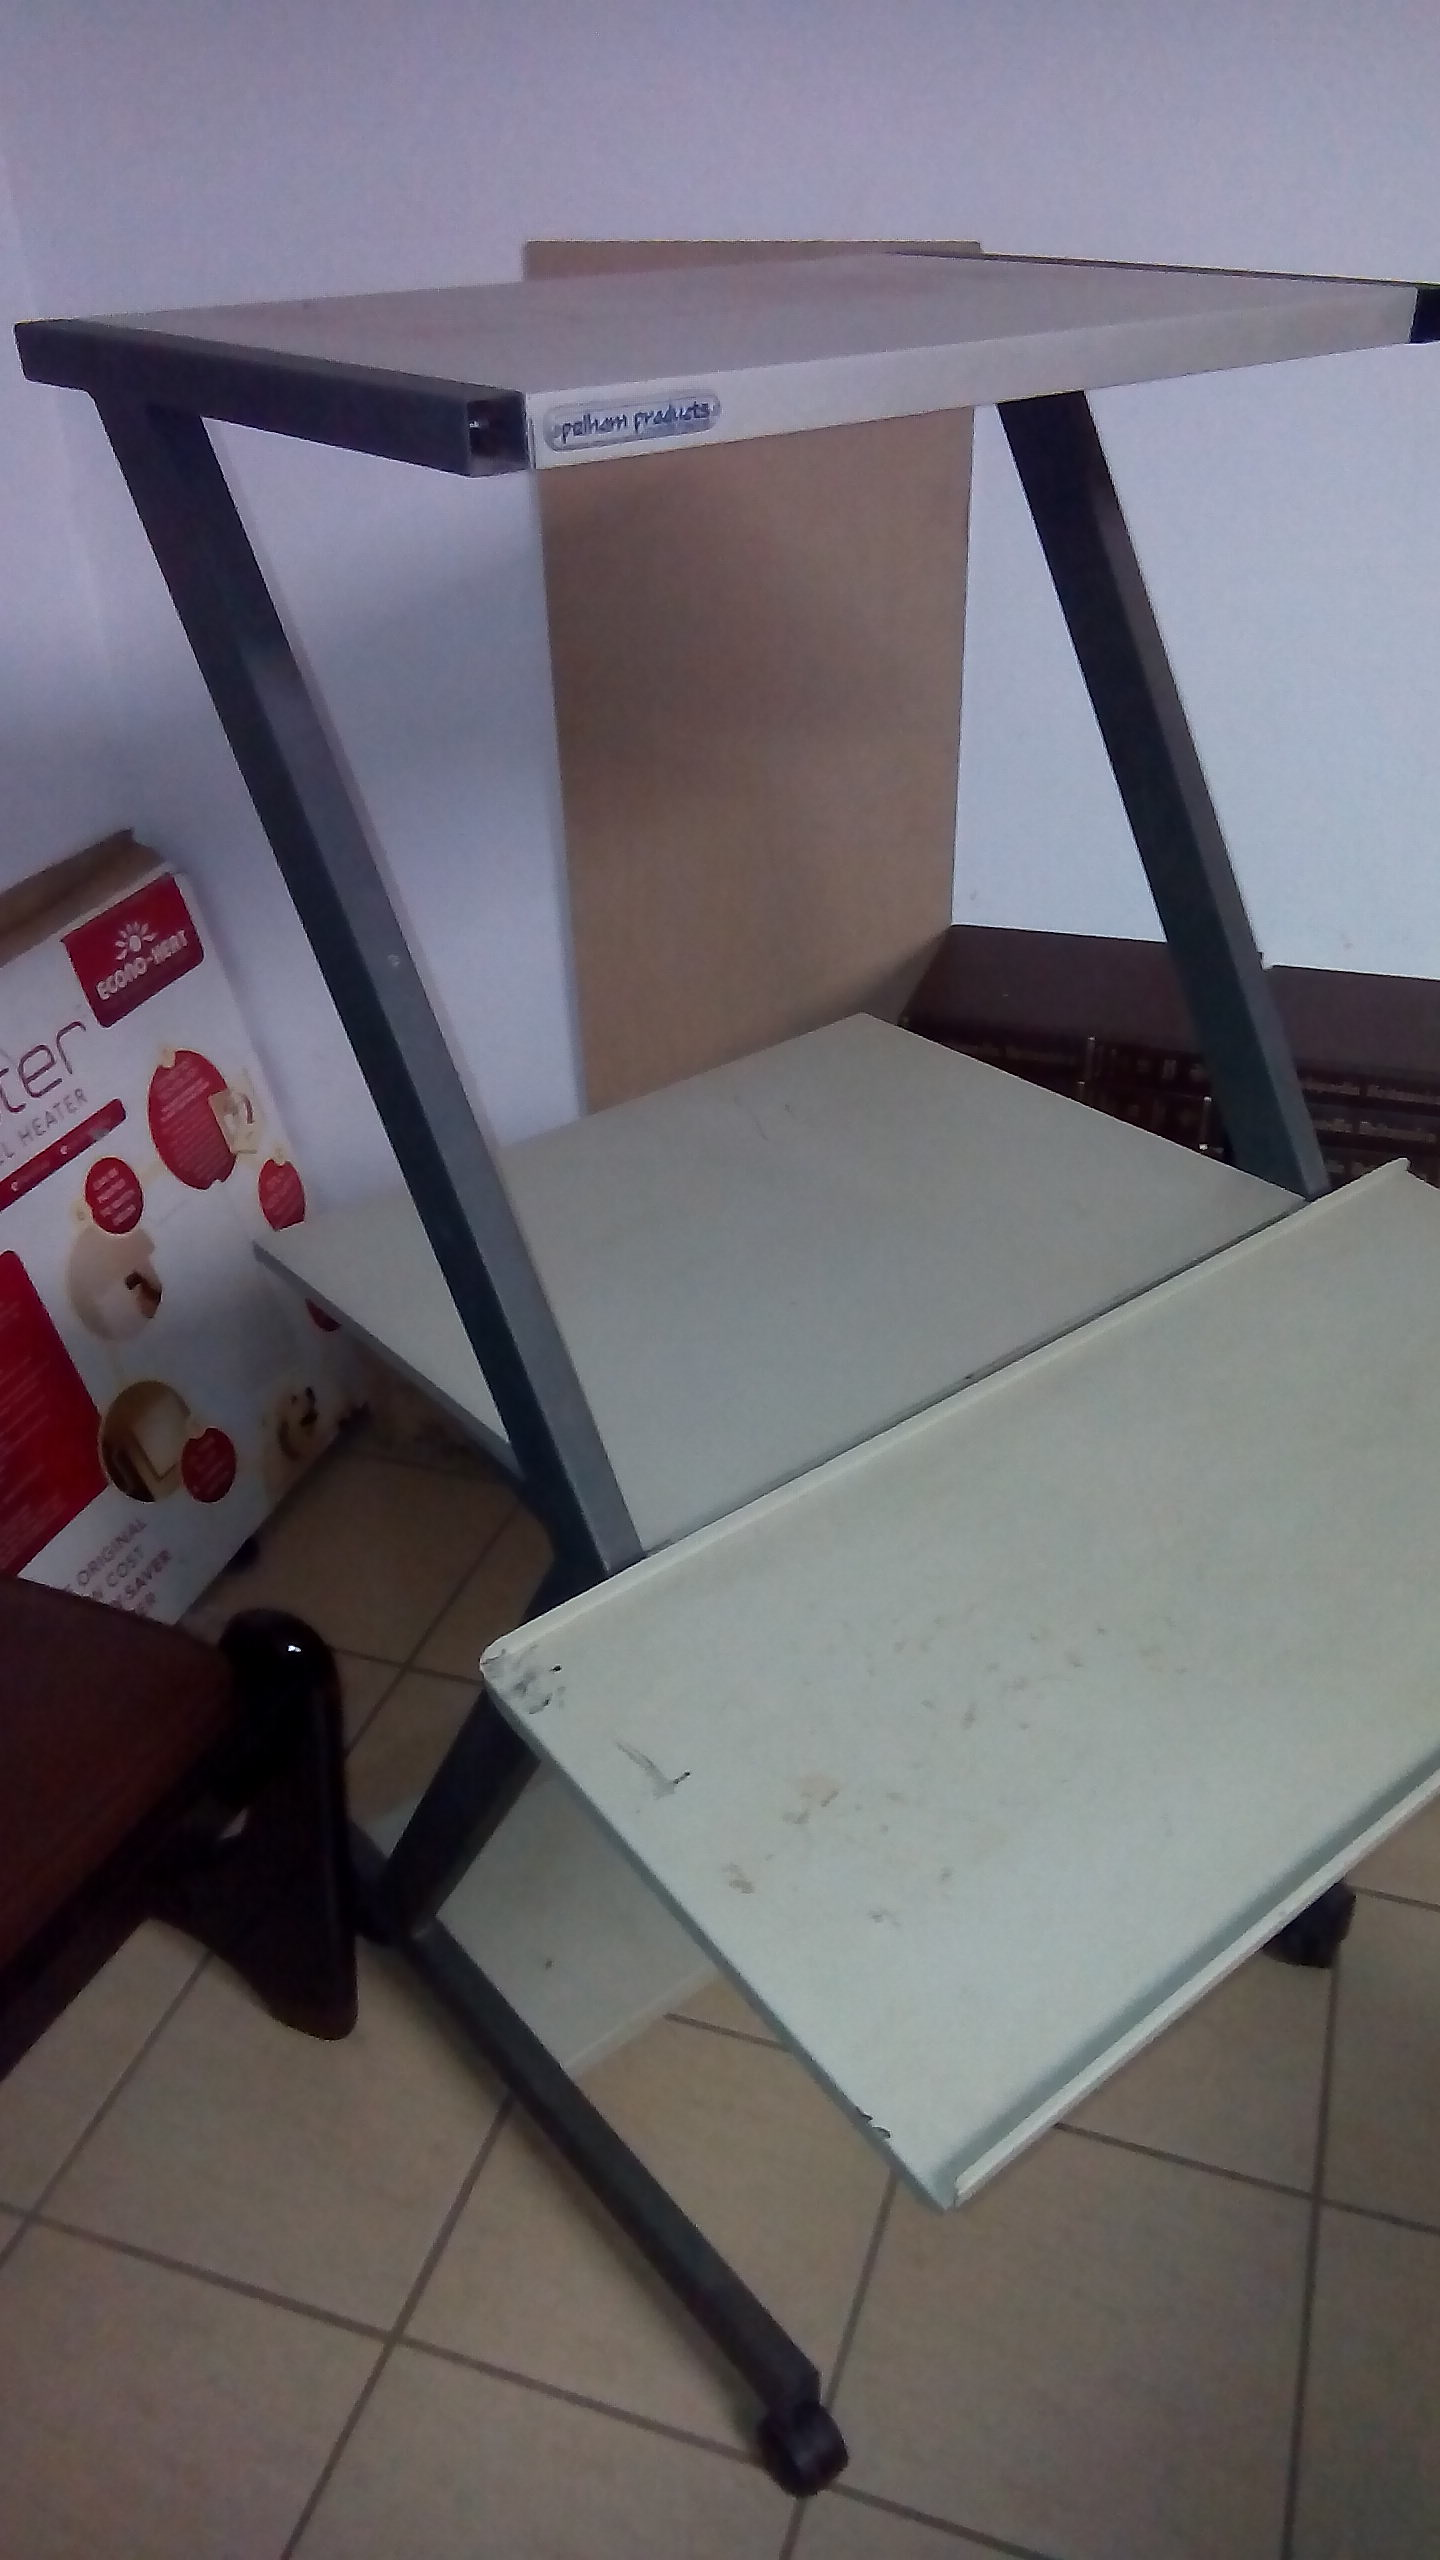 Computer Stand for R1000